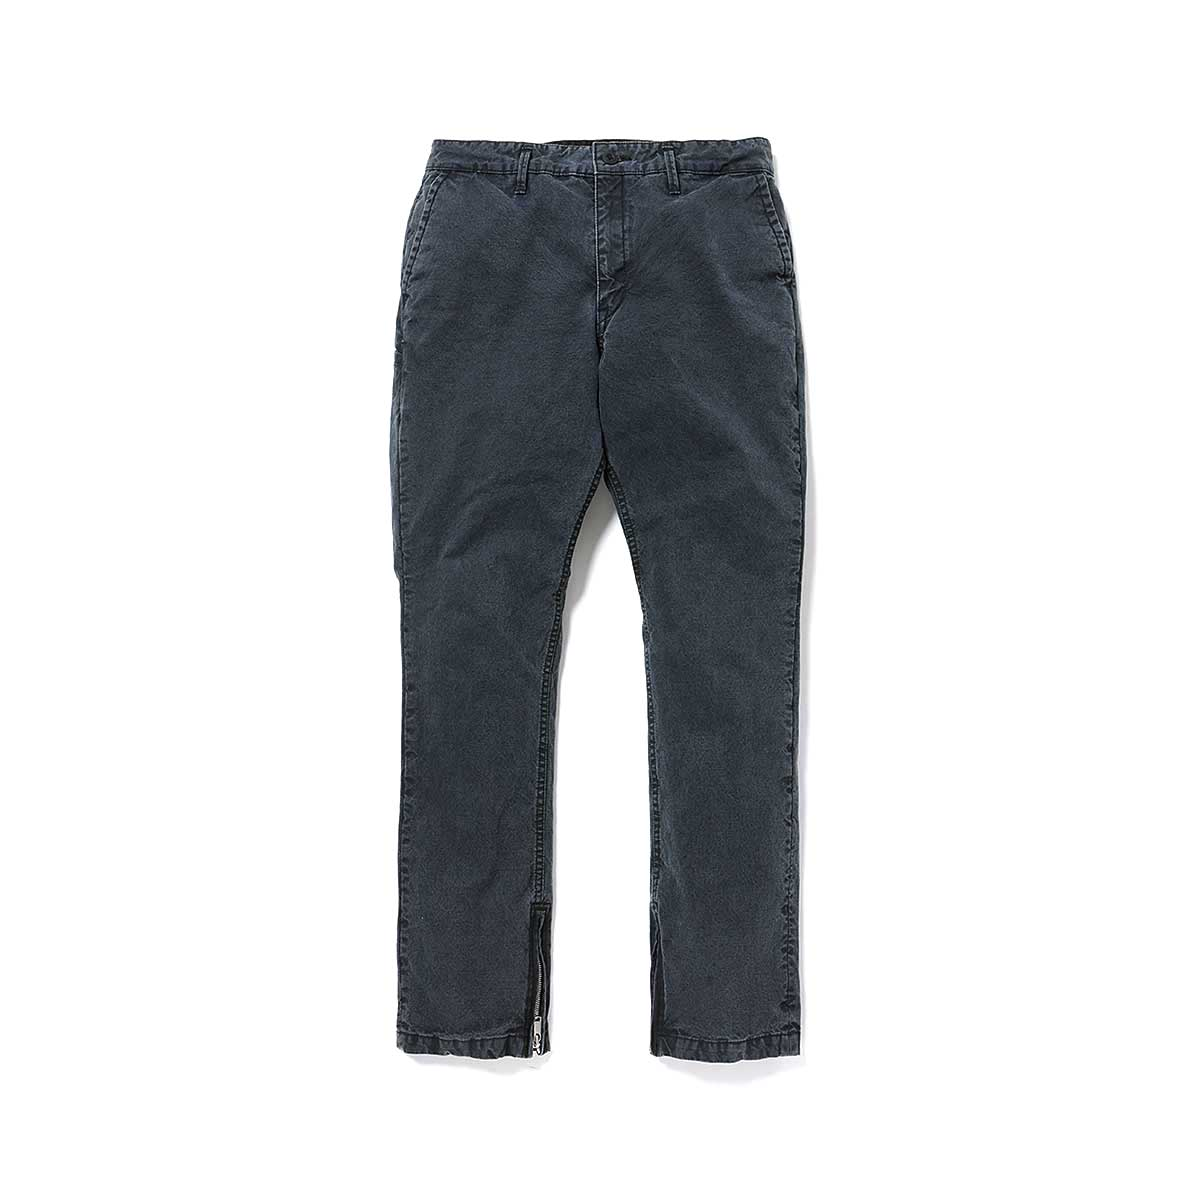 nonnative / HANDYMAN TROUSERS RELAX FIT COTTON OXFORD -black